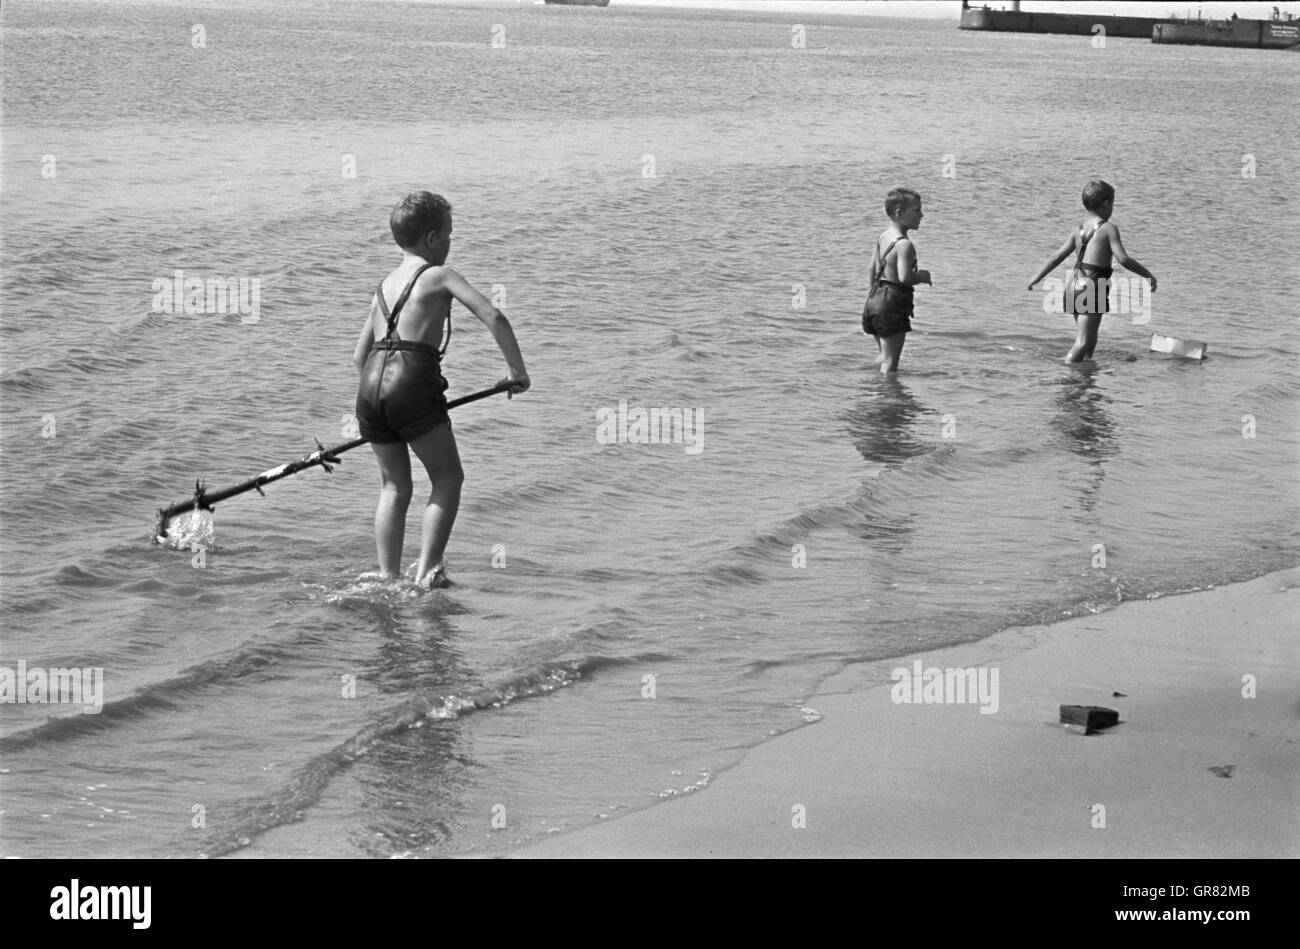 Child Playing In The Sand 1970 Bw - Stock Image